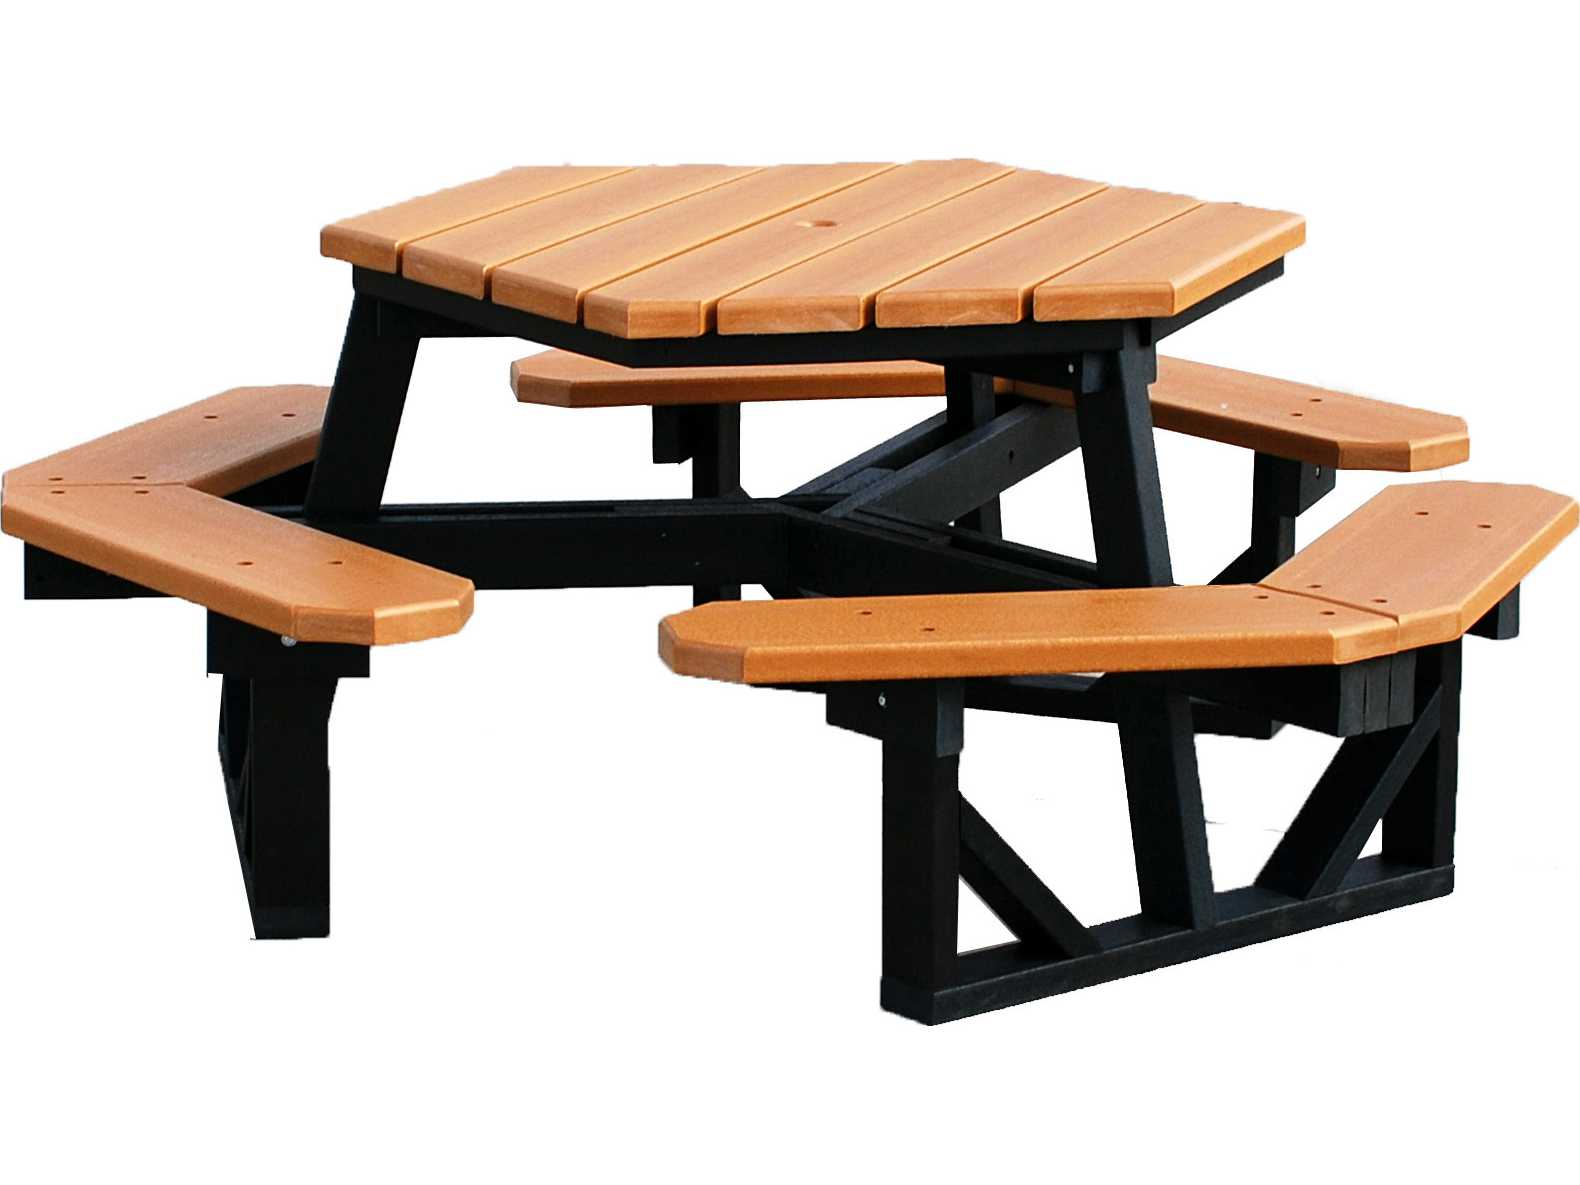 frog furnishings hex recycled plastic 6 ft 69 5 x 69 5 hexagon picnic table pb6hex. Black Bedroom Furniture Sets. Home Design Ideas